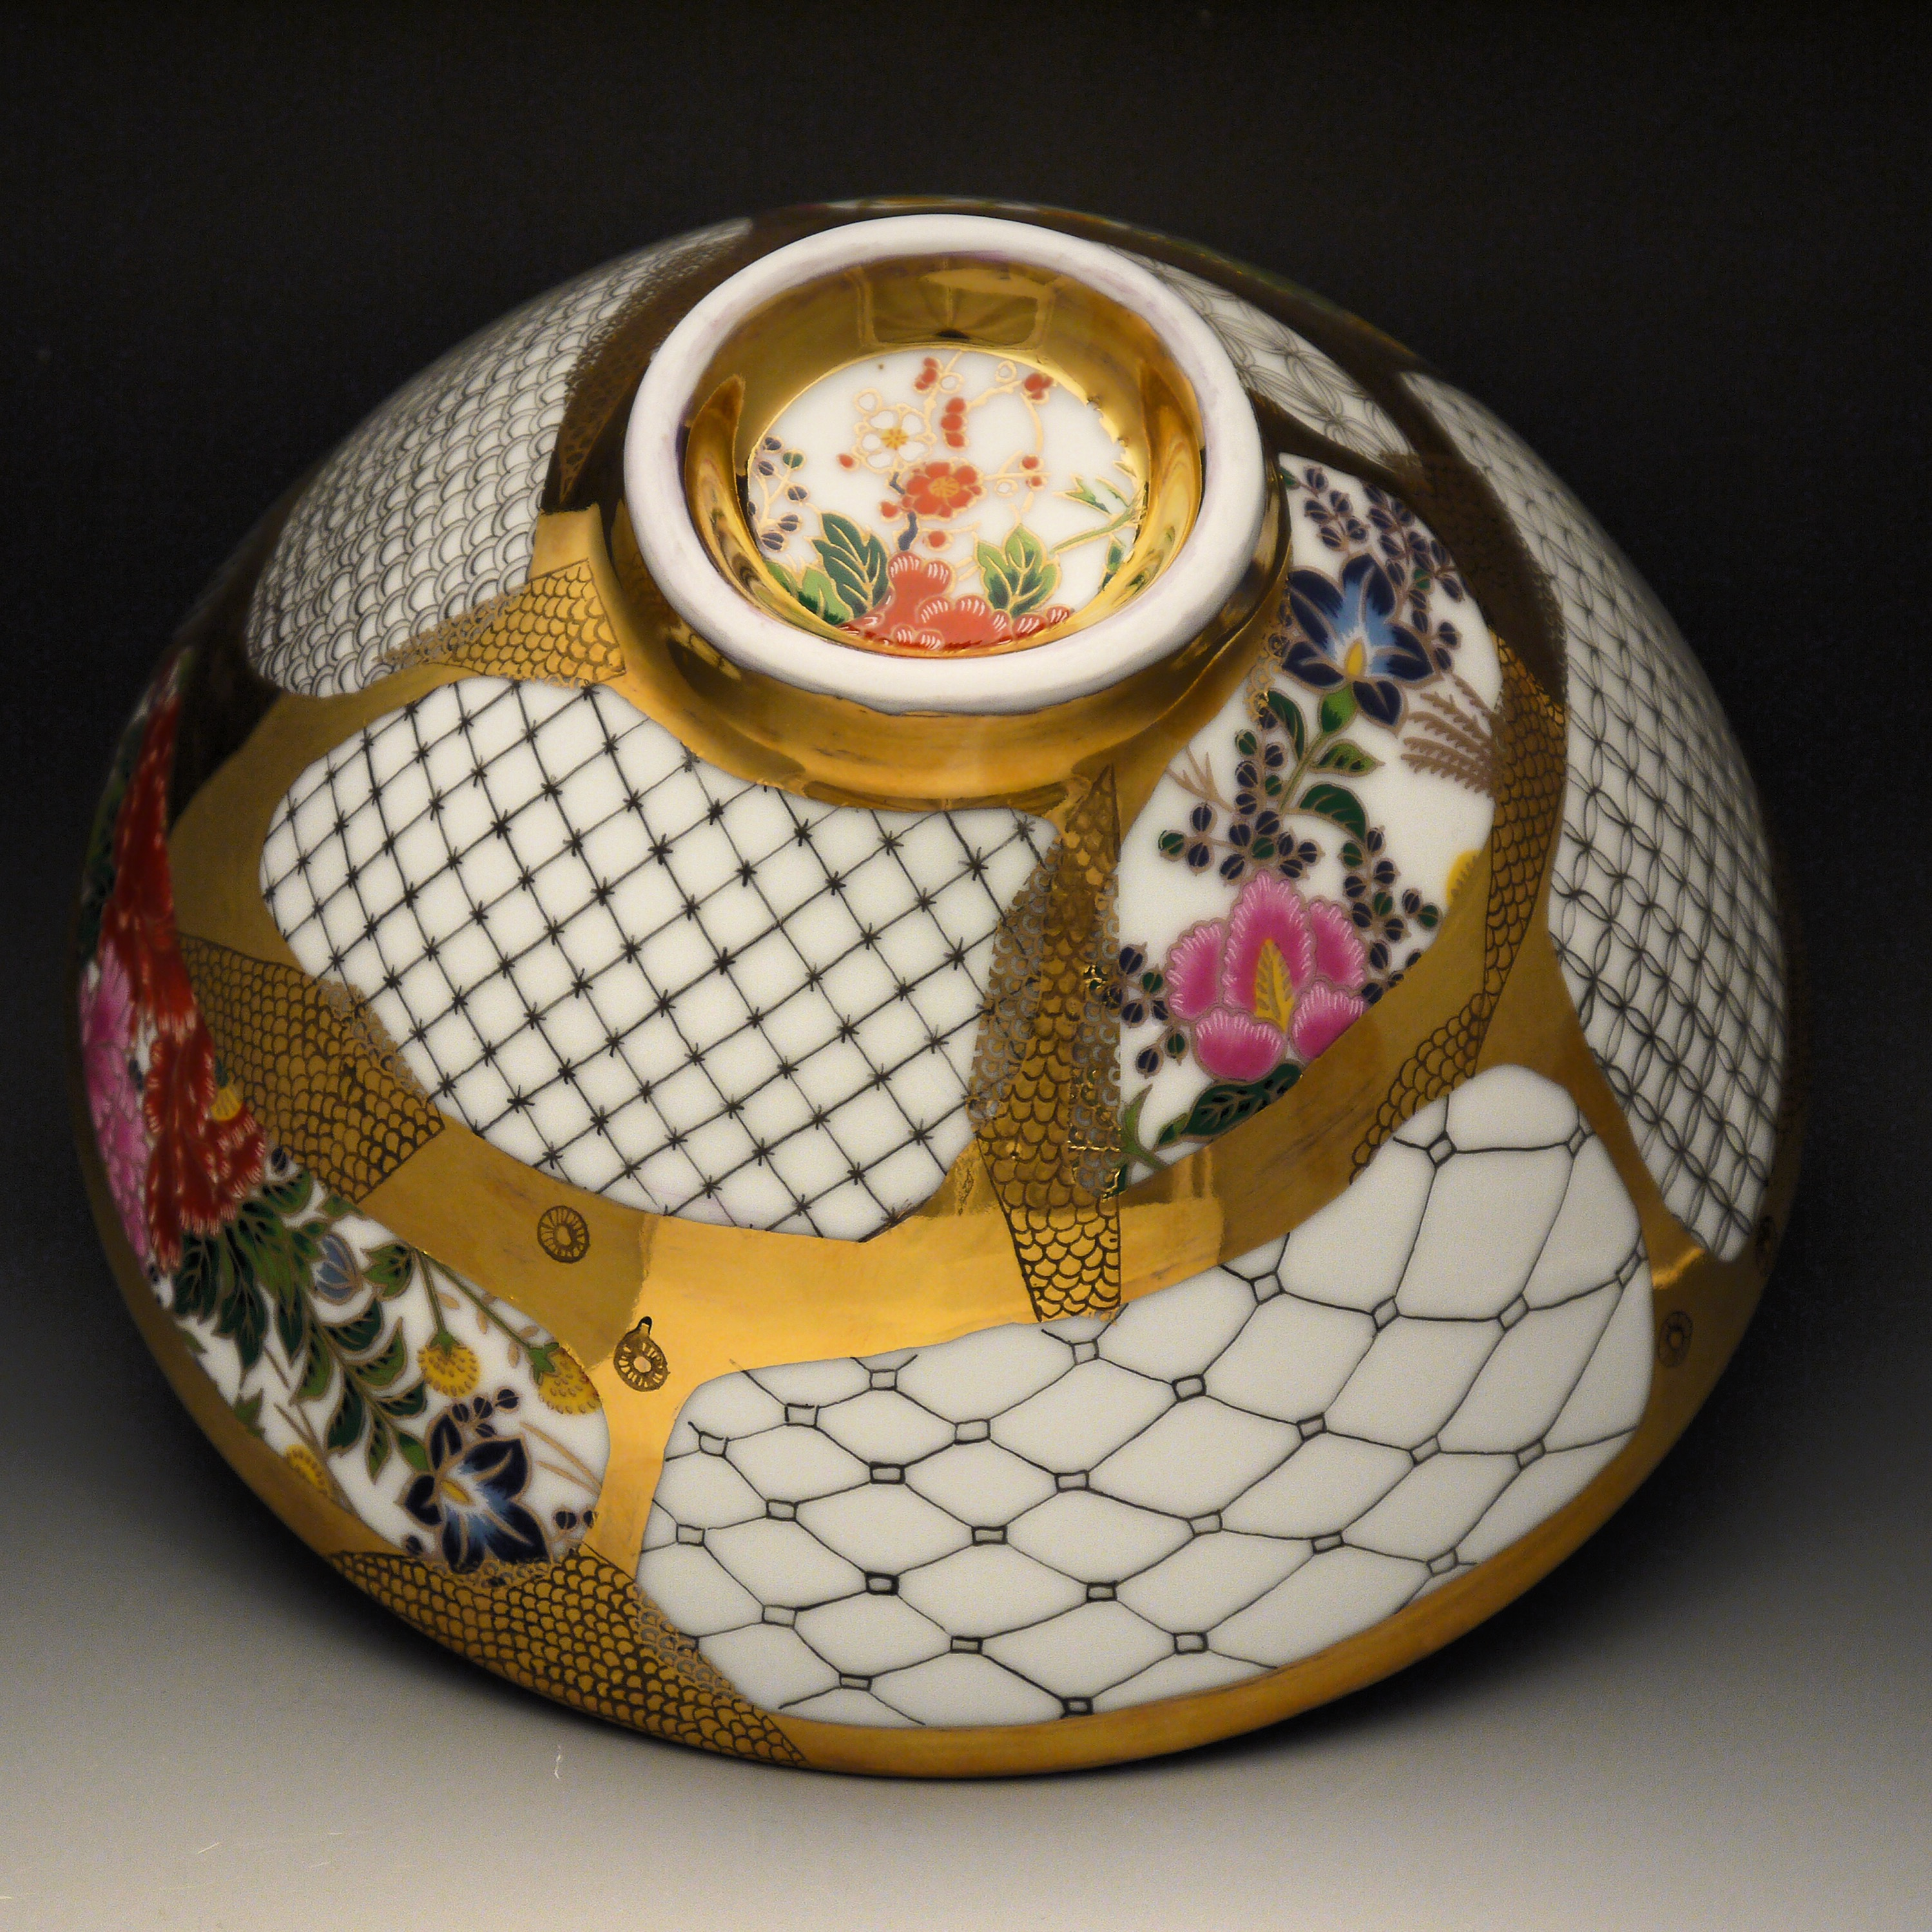 """Title: """"Japanese Noodle Bowl II"""" Size: h4 inches x w9 inches Materials: Chinese Porcelain, Japanese Vintage Flower Decal, German Gold Luster, China Paint (Contact Reese Gallery for pricing: 314.954.7638)"""